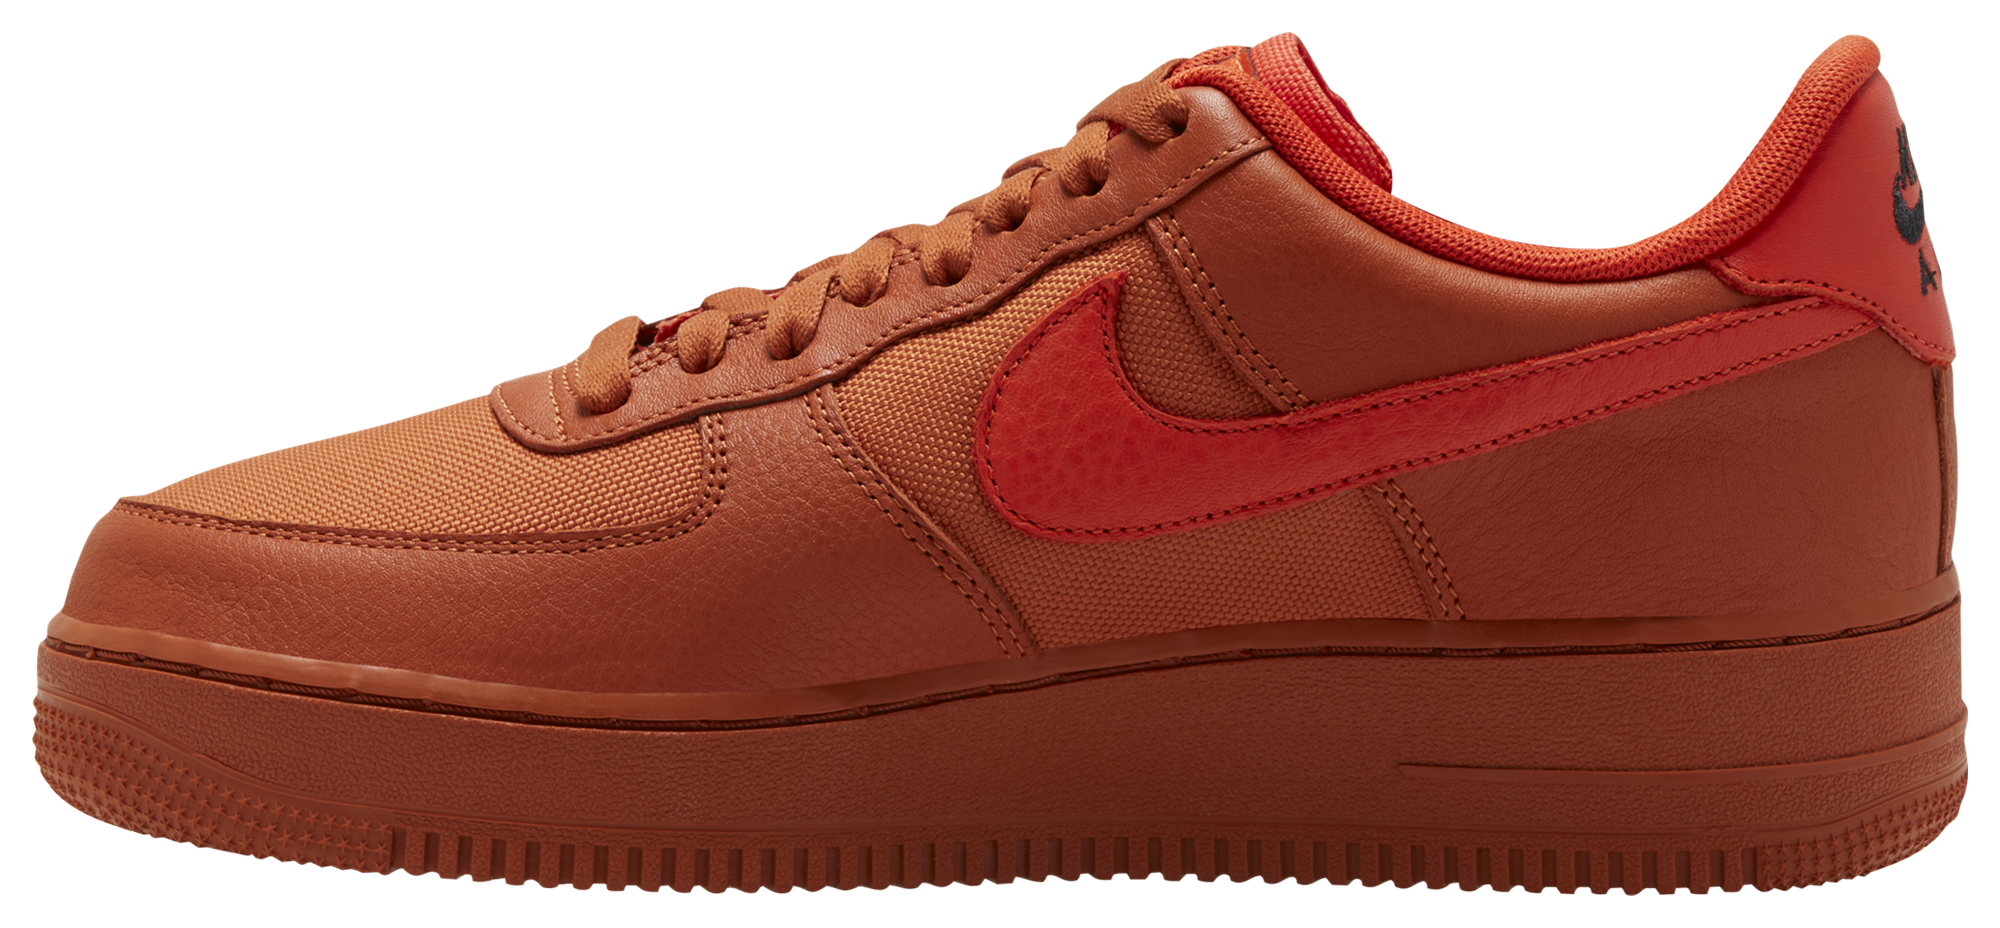 Nike Air Force 1 Low Gore-Tex CK2630-800 Release Date Info